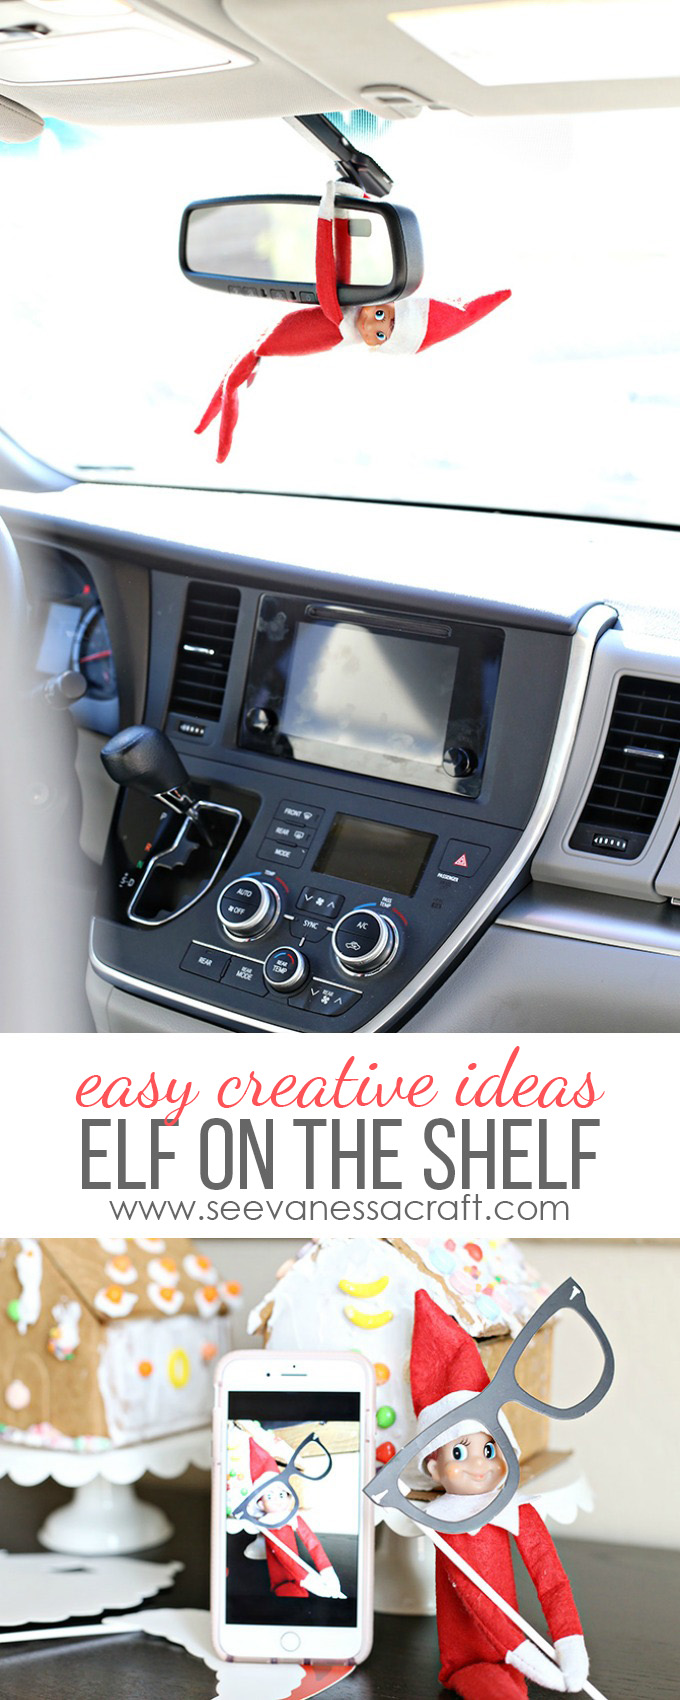 5-easy-elf-on-the-shelf-ideas-for-christmas-copy